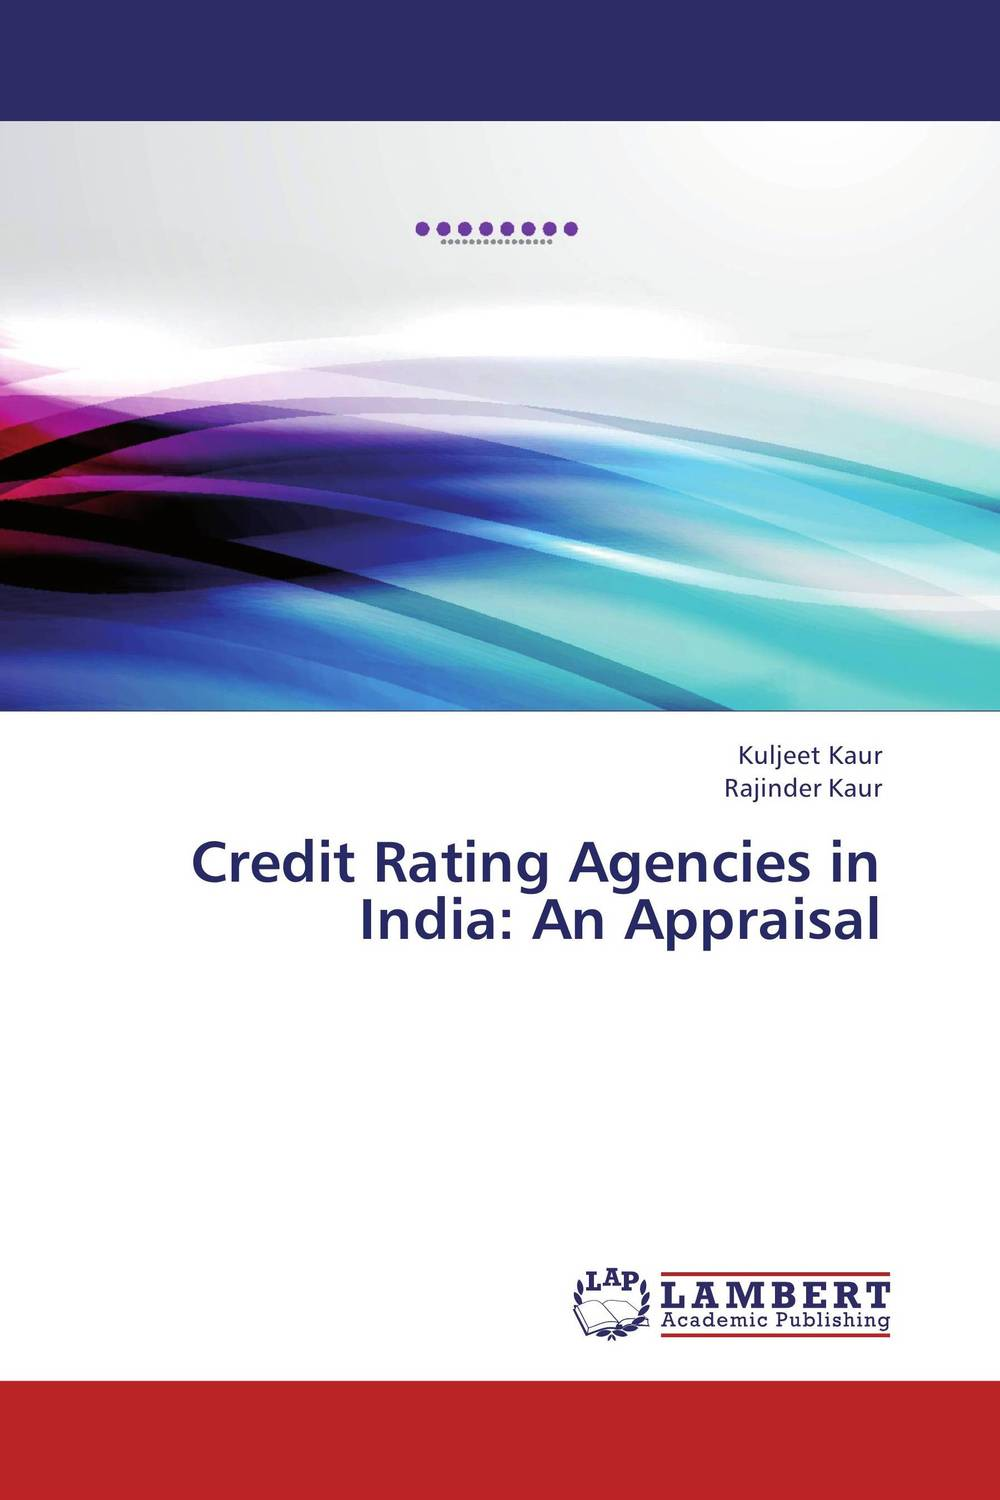 Credit Rating Agencies in India: An Appraisal